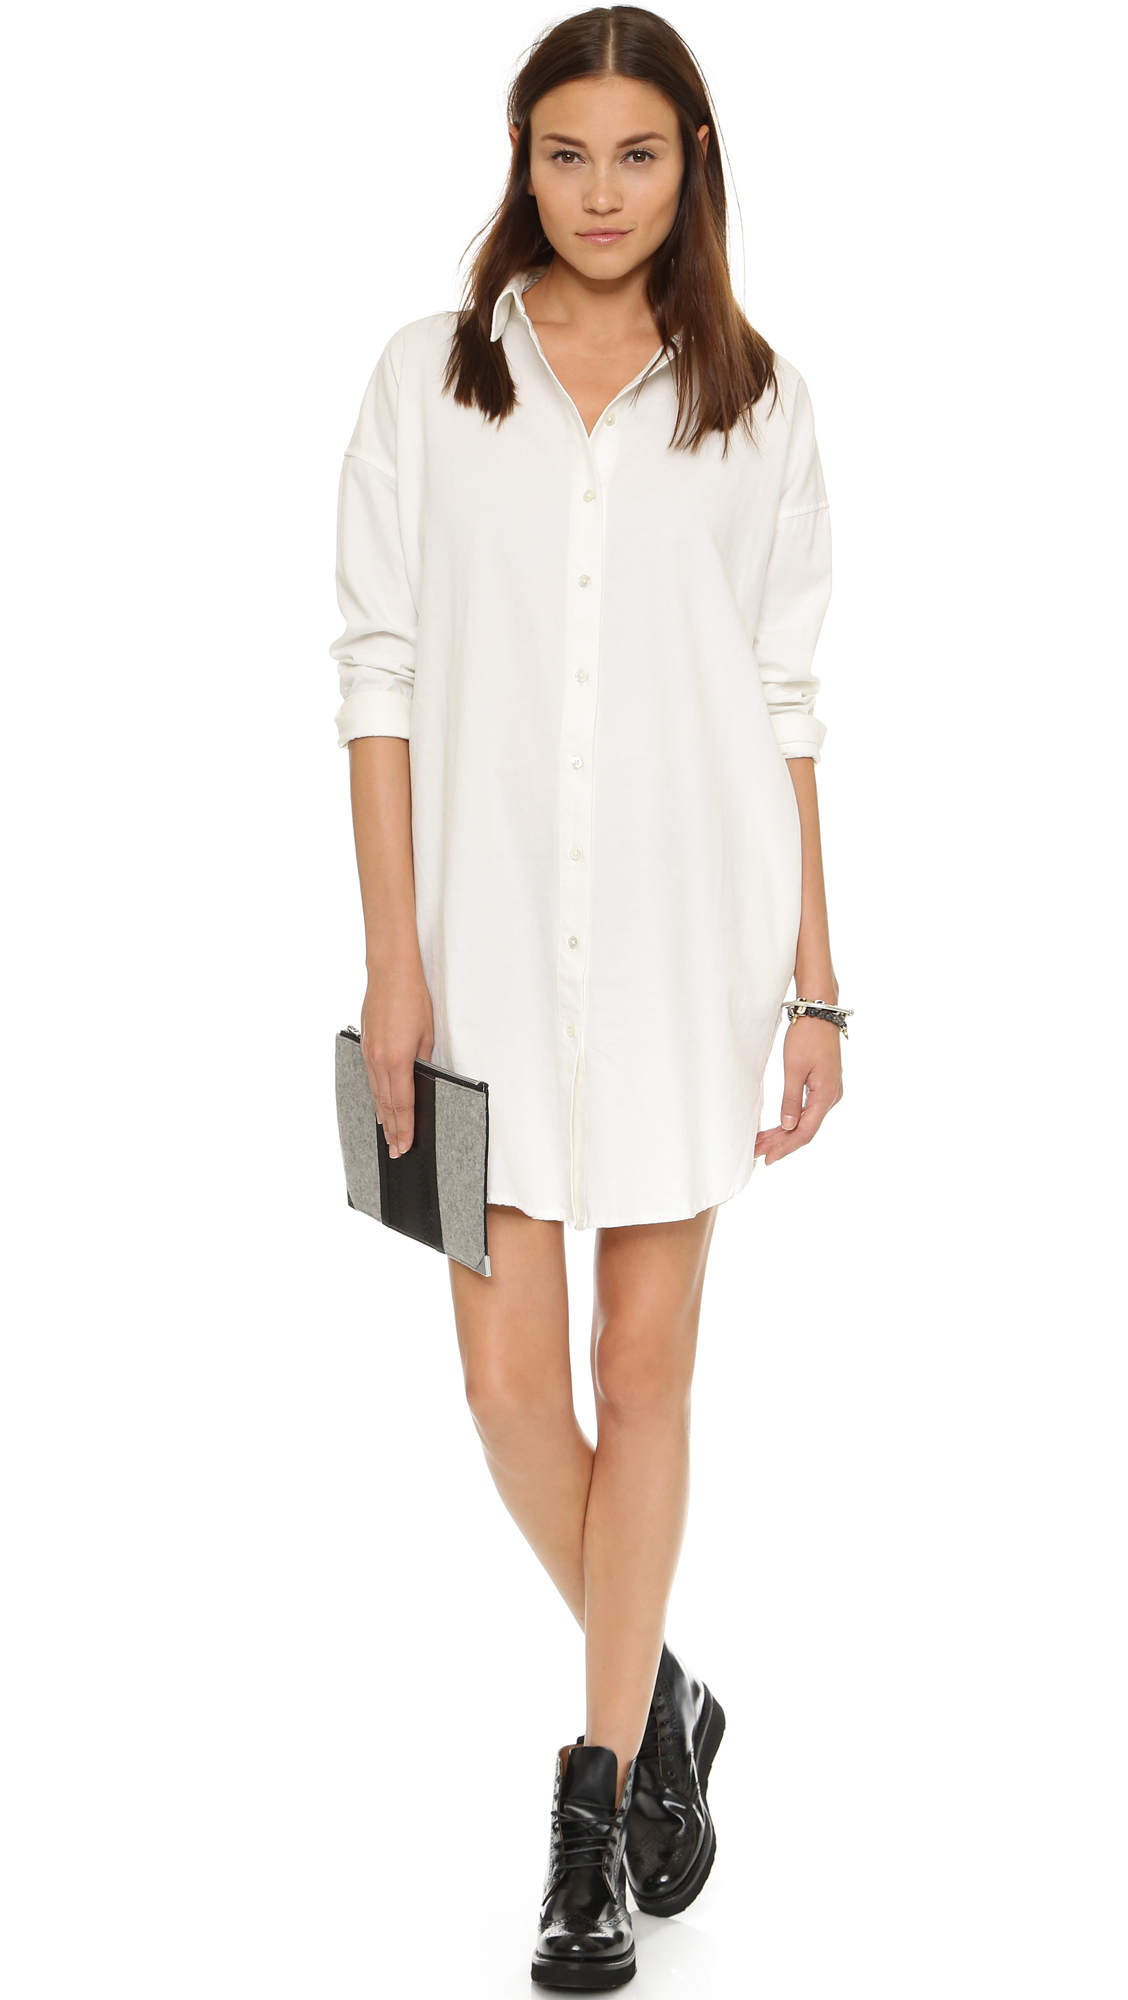 0676698f70c Lyst - Earnest Sewn Kyle Shirtdress - White in White